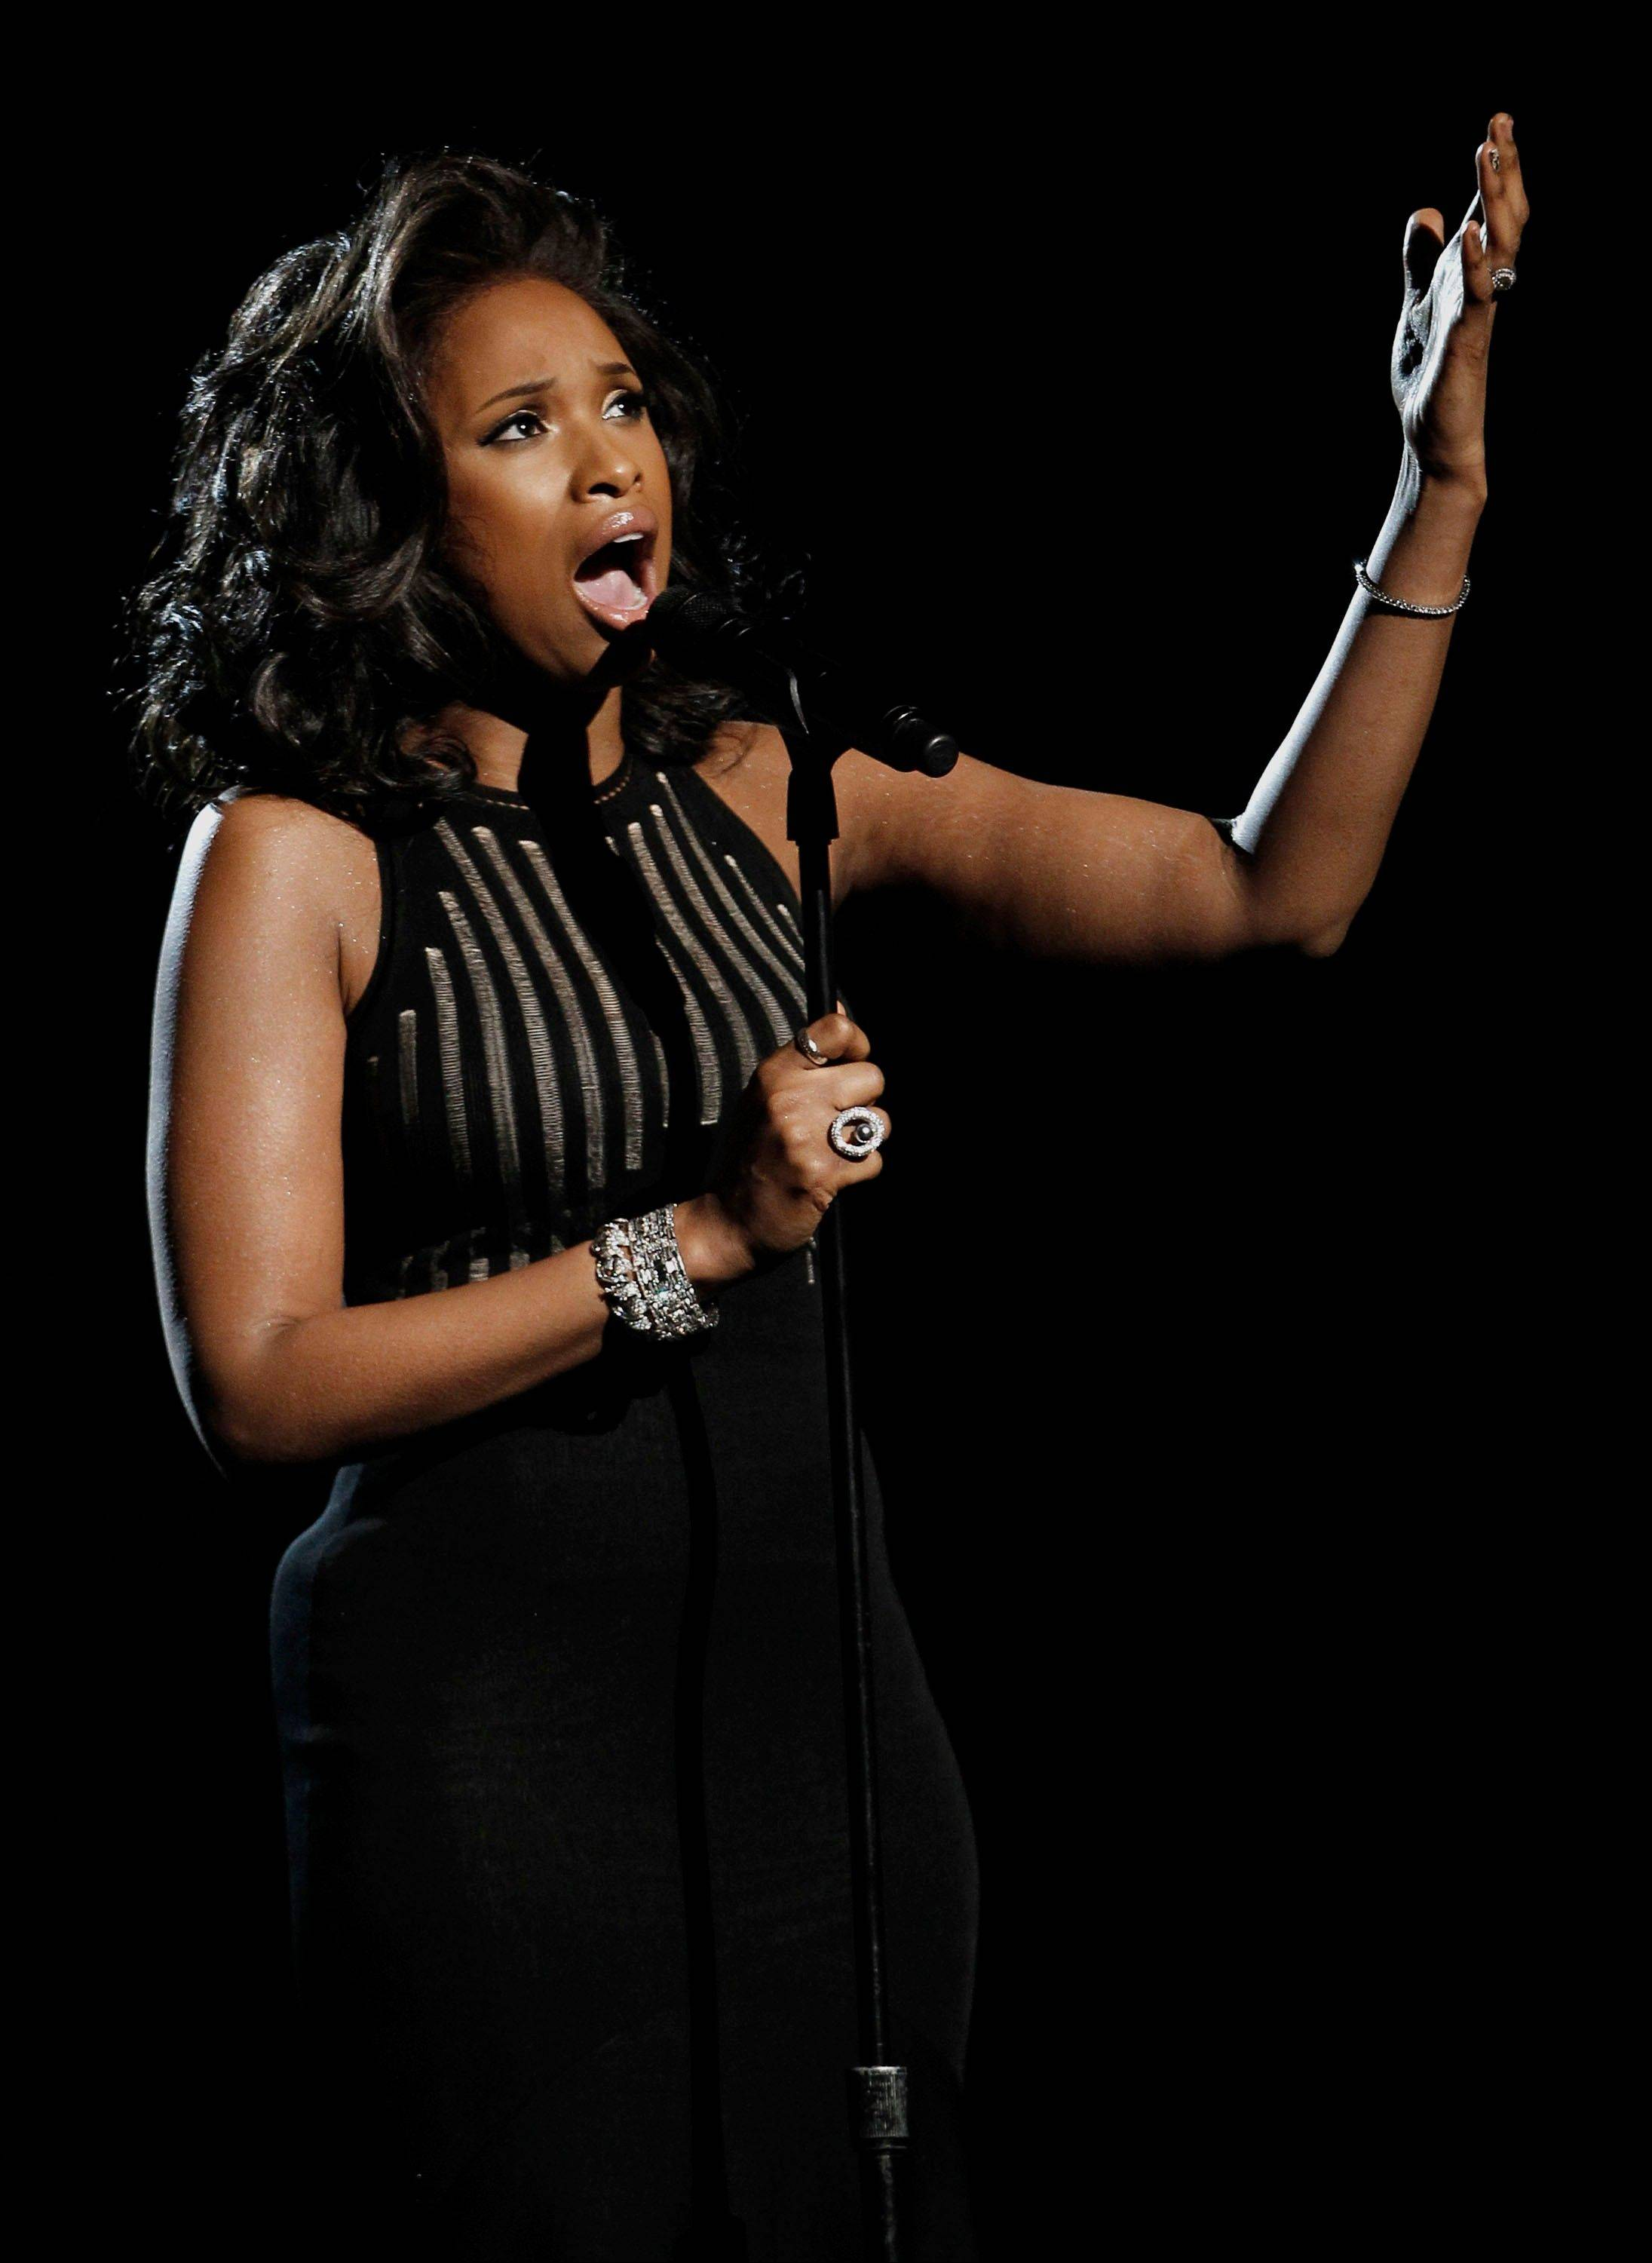 Jennifer Hudson will perform at Taste of Chicago on July 11.